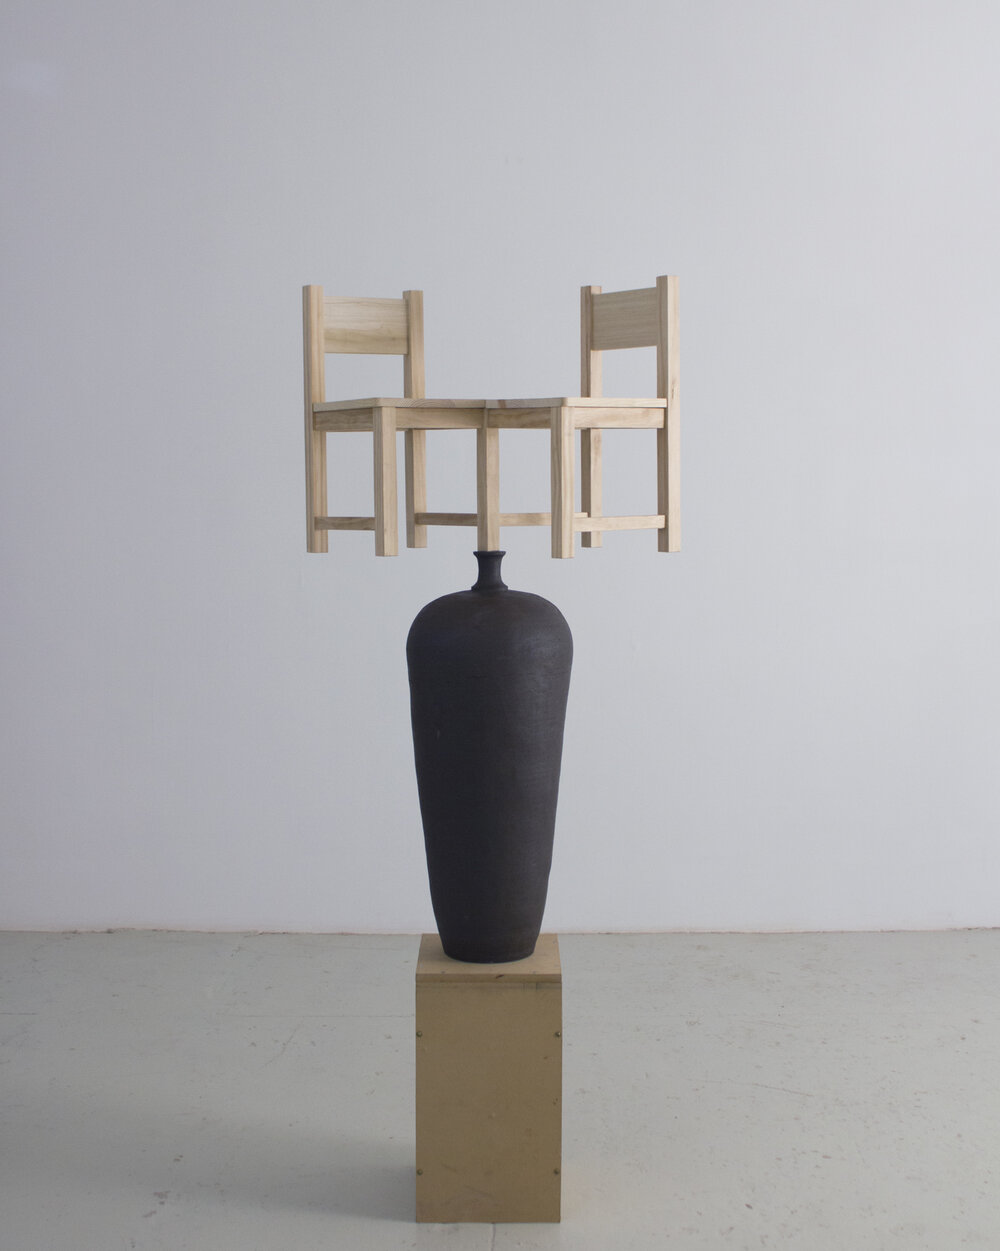 Ceramic, Wood  2019 - height with plinth 6'